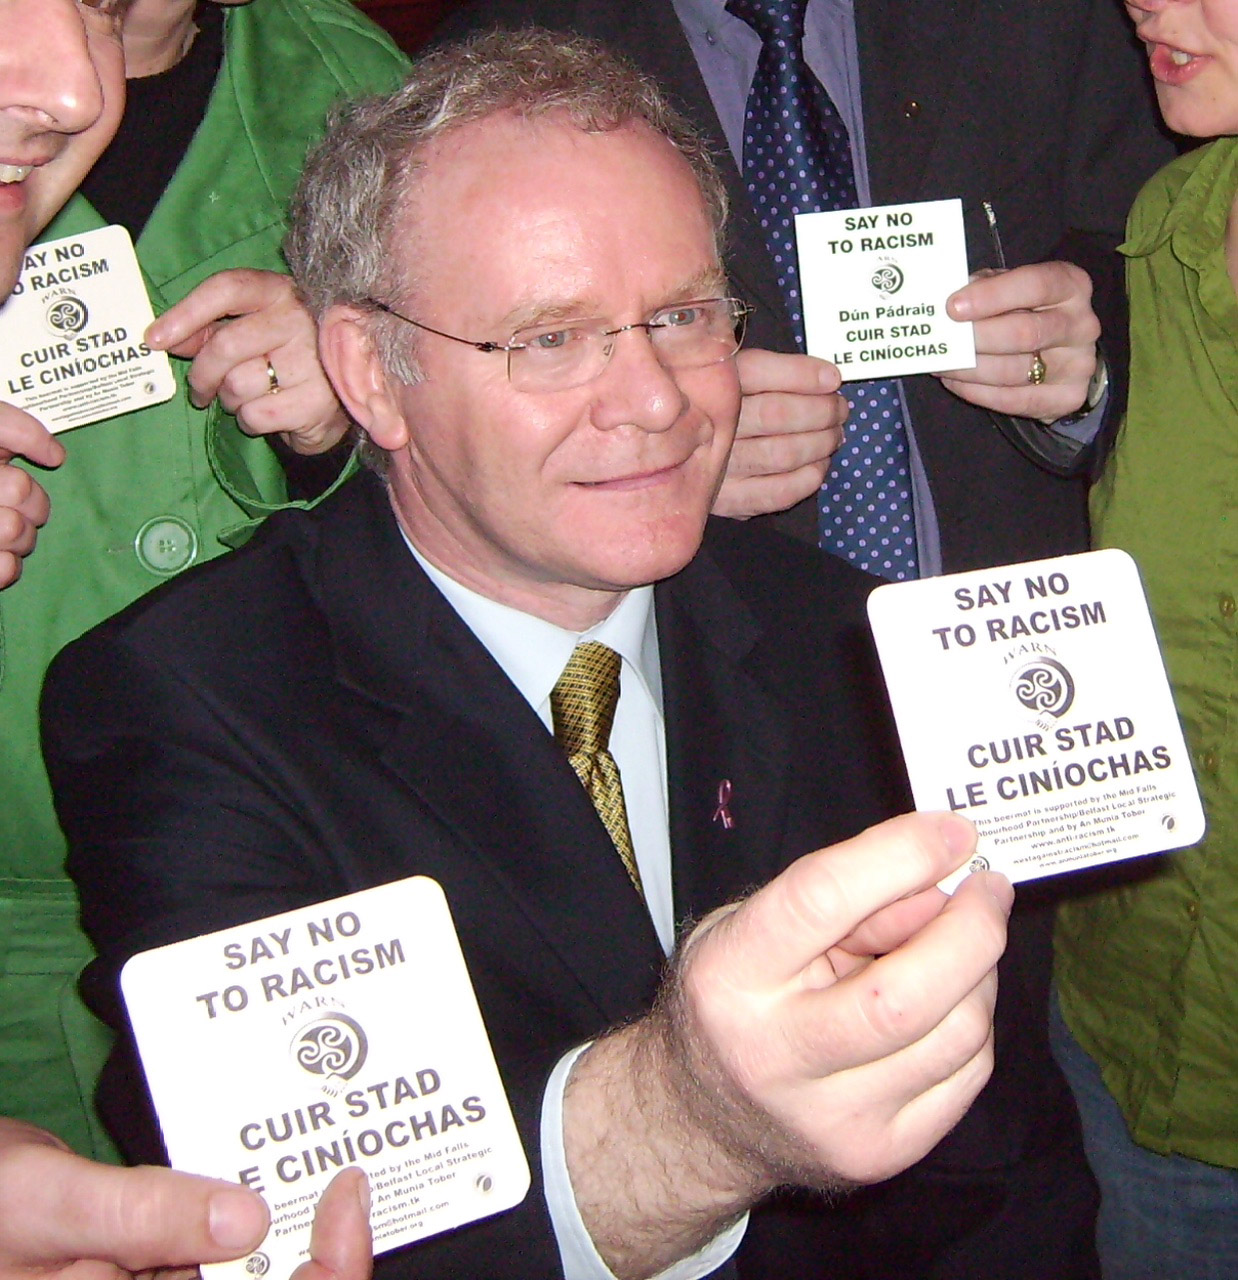 Martin-standing-up-against-racism